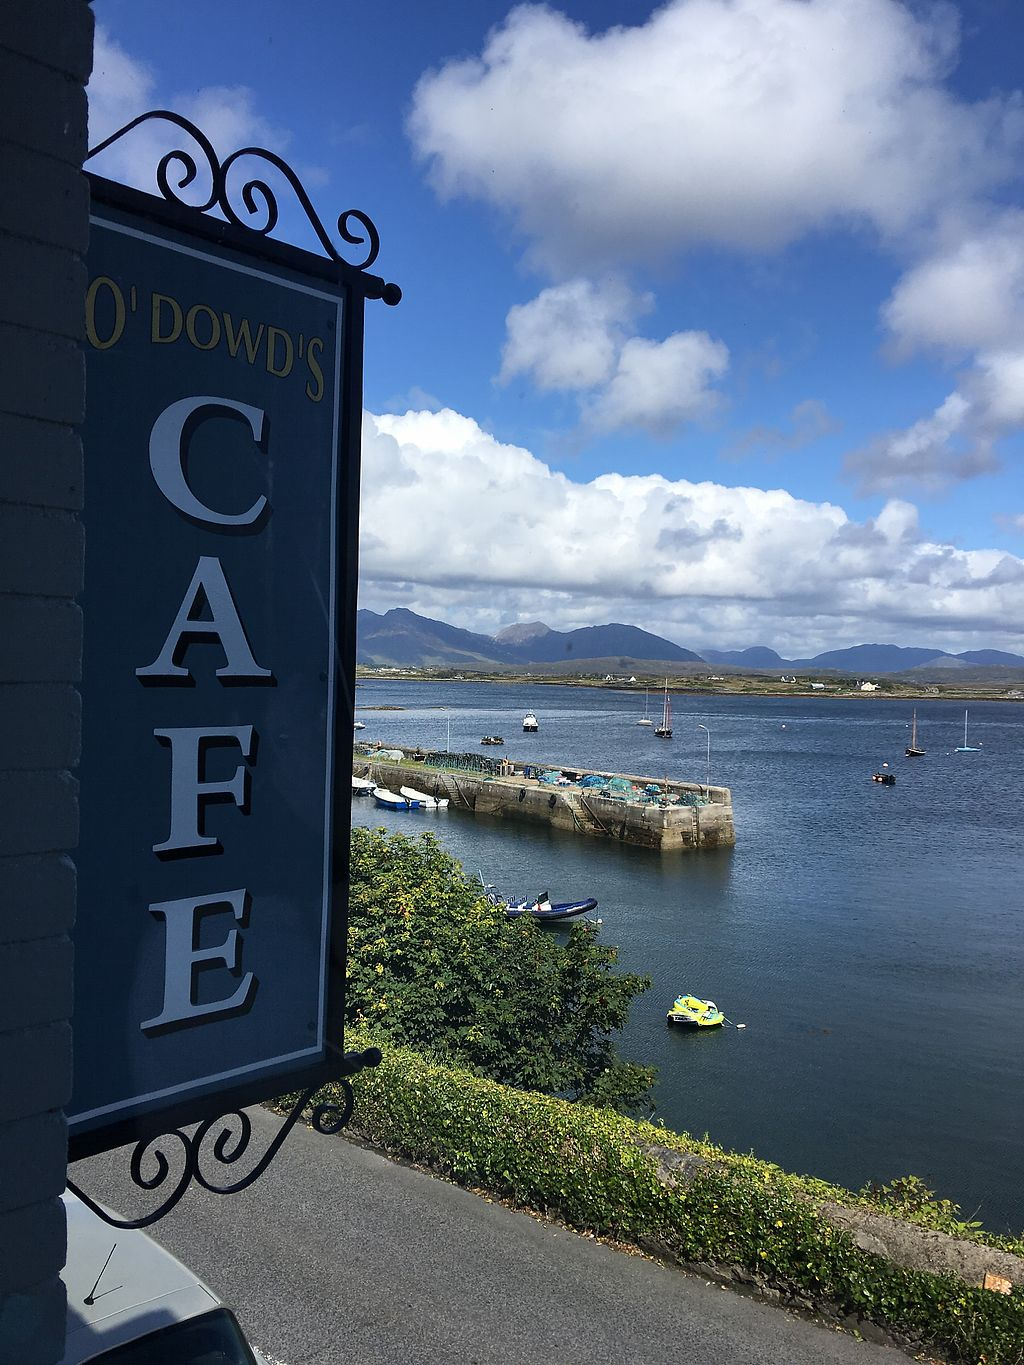 """Photo of O Dowds Cafe  by <a href=""""/members/profile/Picto"""">Picto</a> <br/>beautiful views upstairs <br/> August 15, 2017  - <a href='/contact/abuse/image/76014/292950'>Report</a>"""